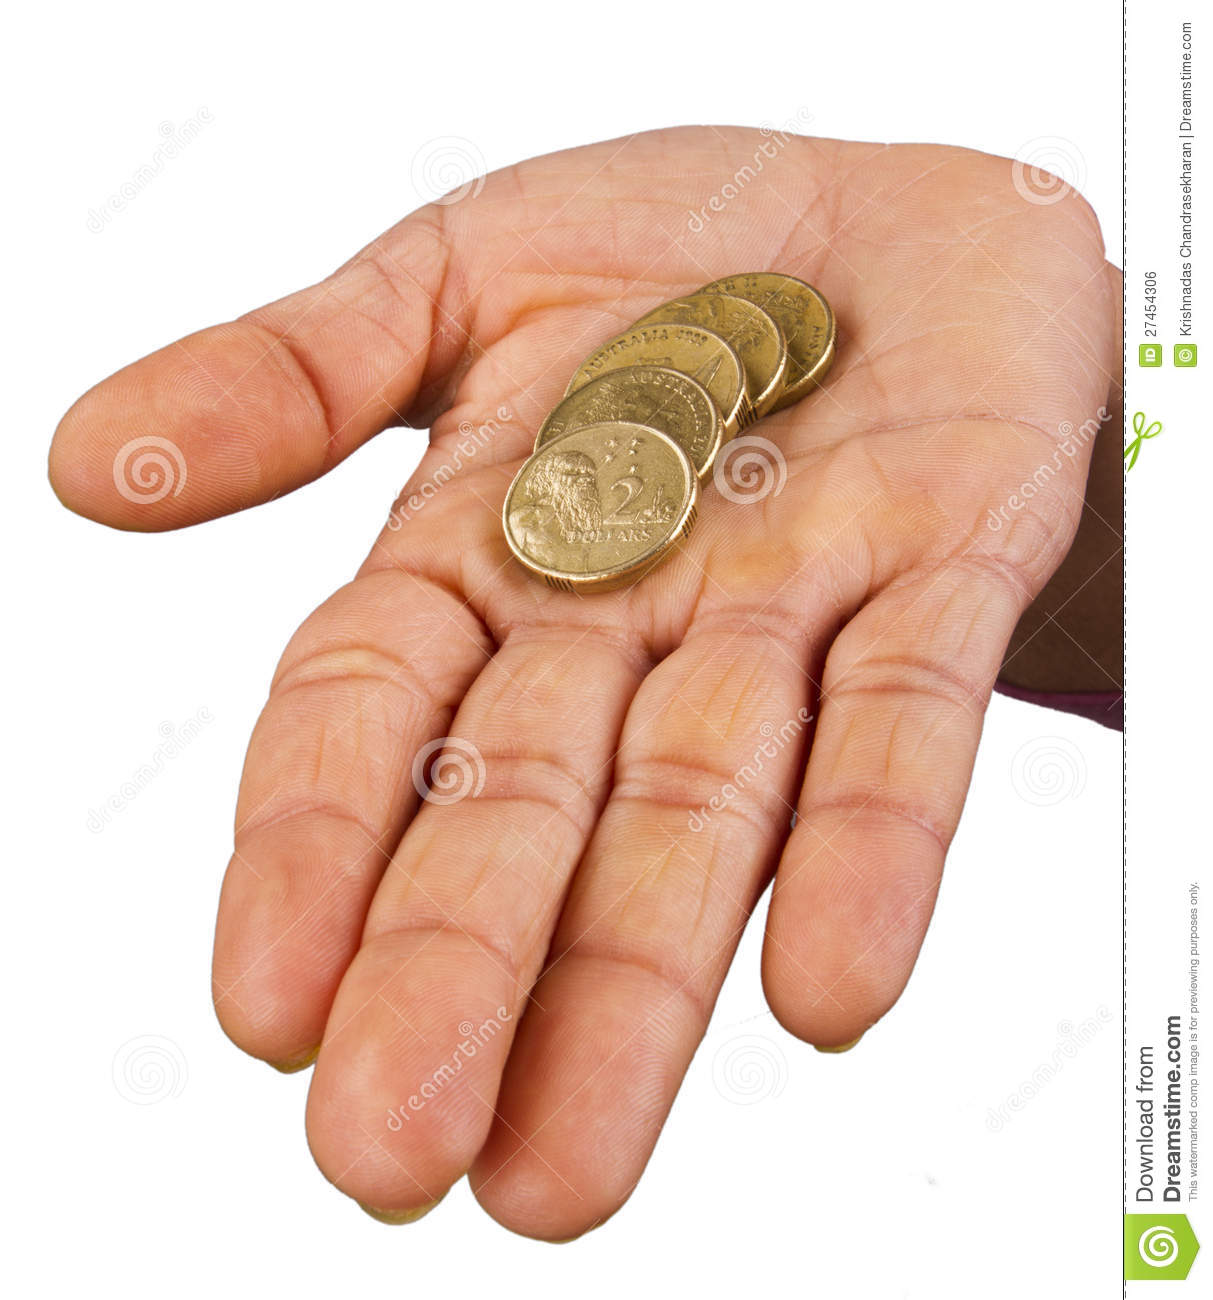 Two hand with coins royalty free stock photo for Ohrensessel 2 hand